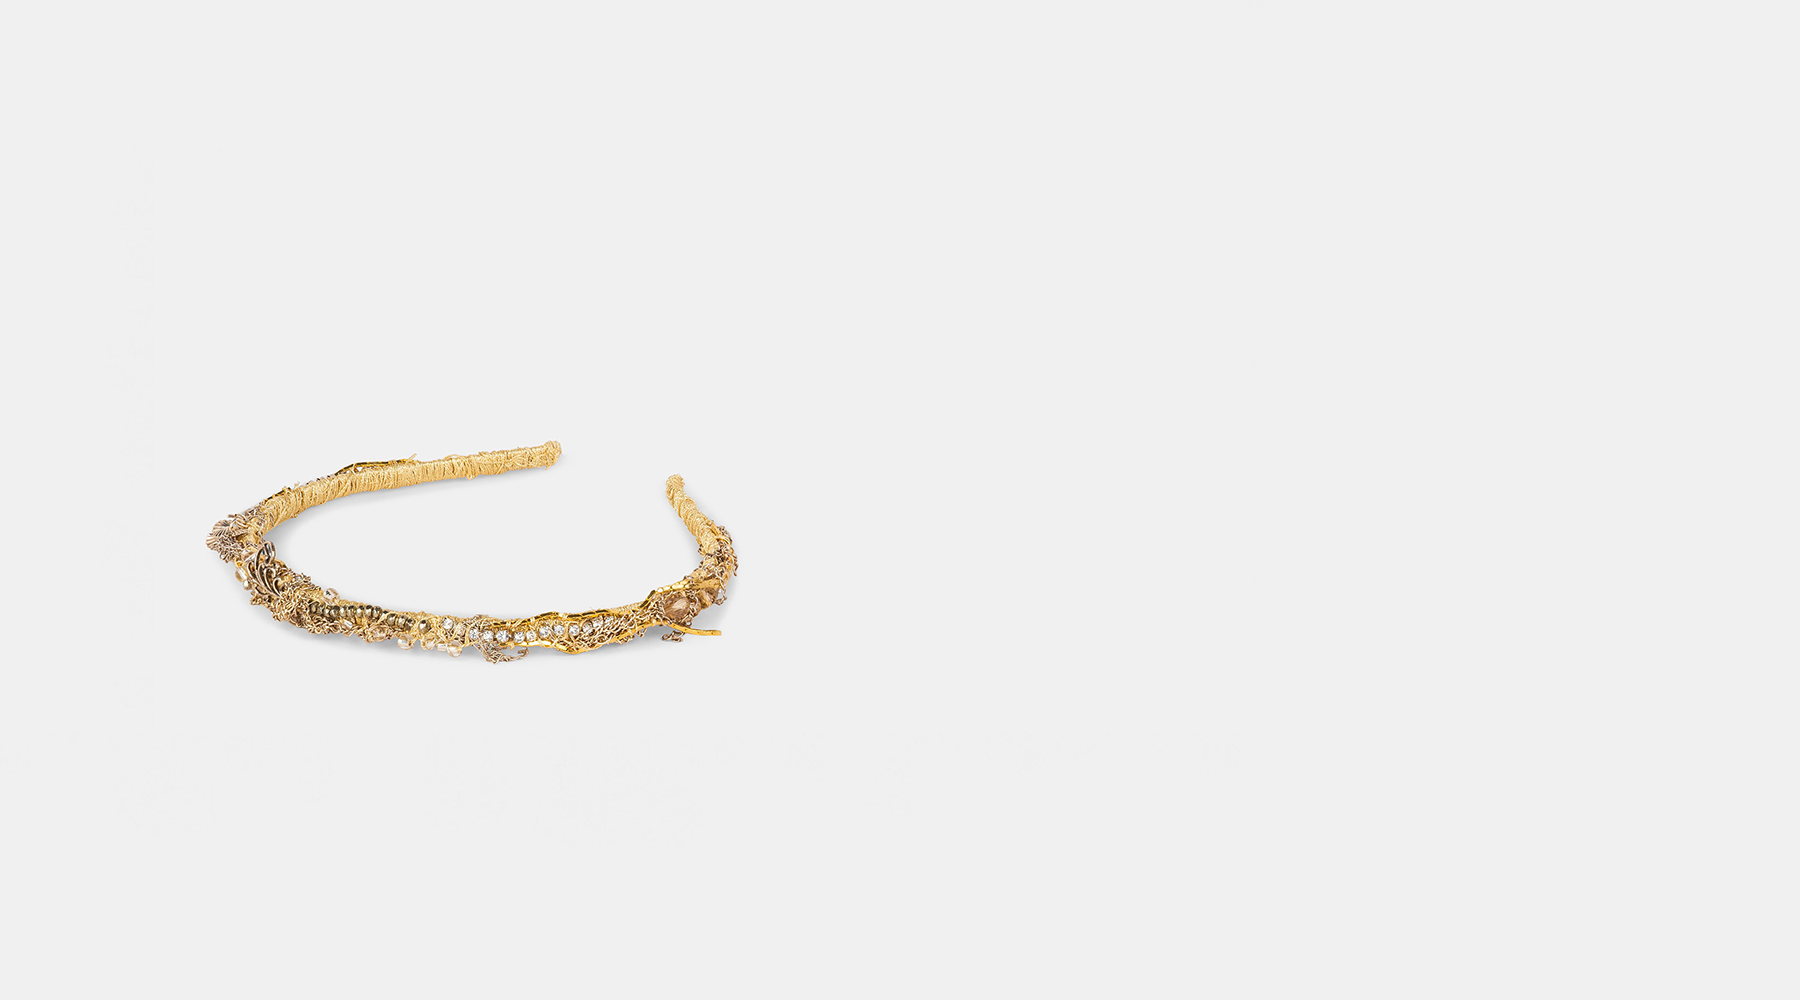 The Roxy Golden Headband